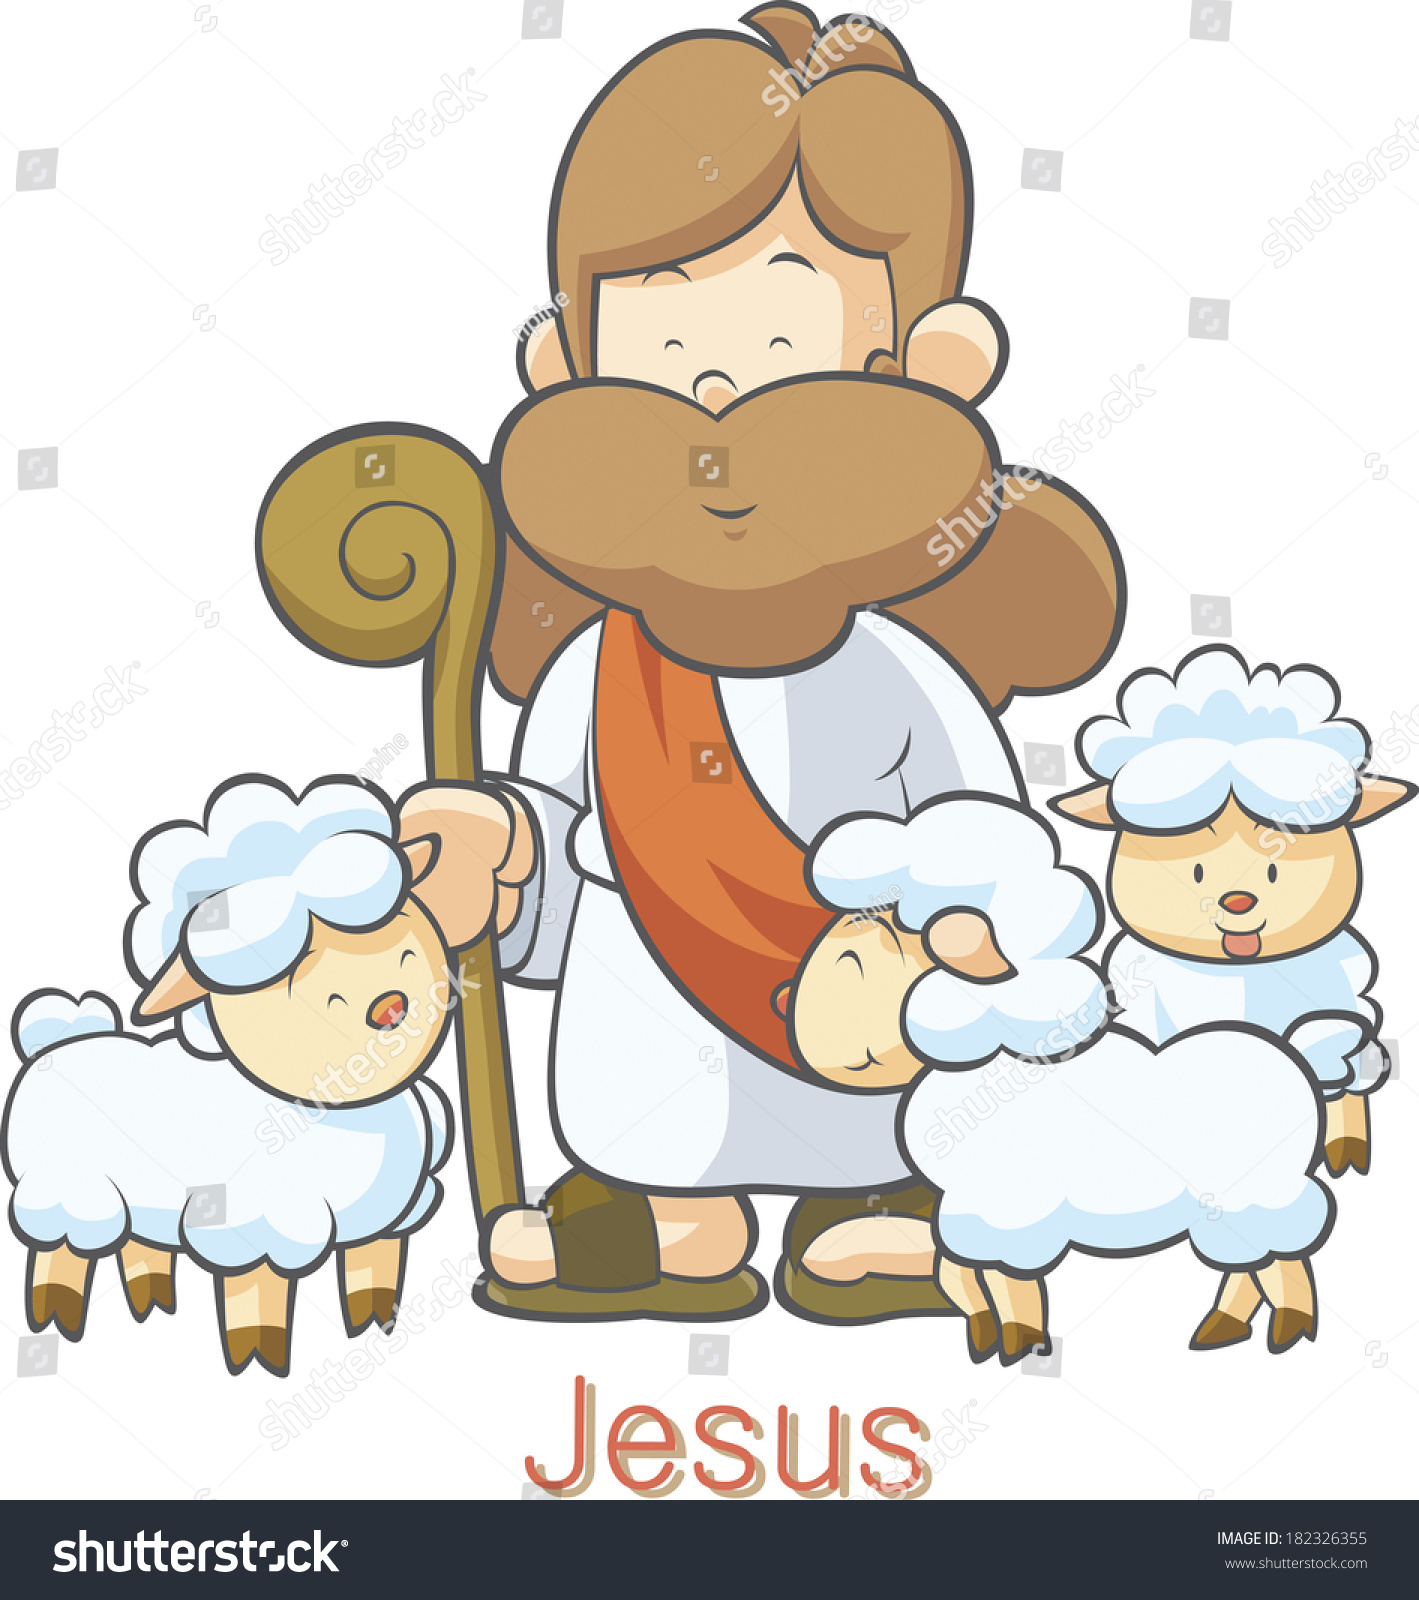 clipart of jesus with sheep - photo #48